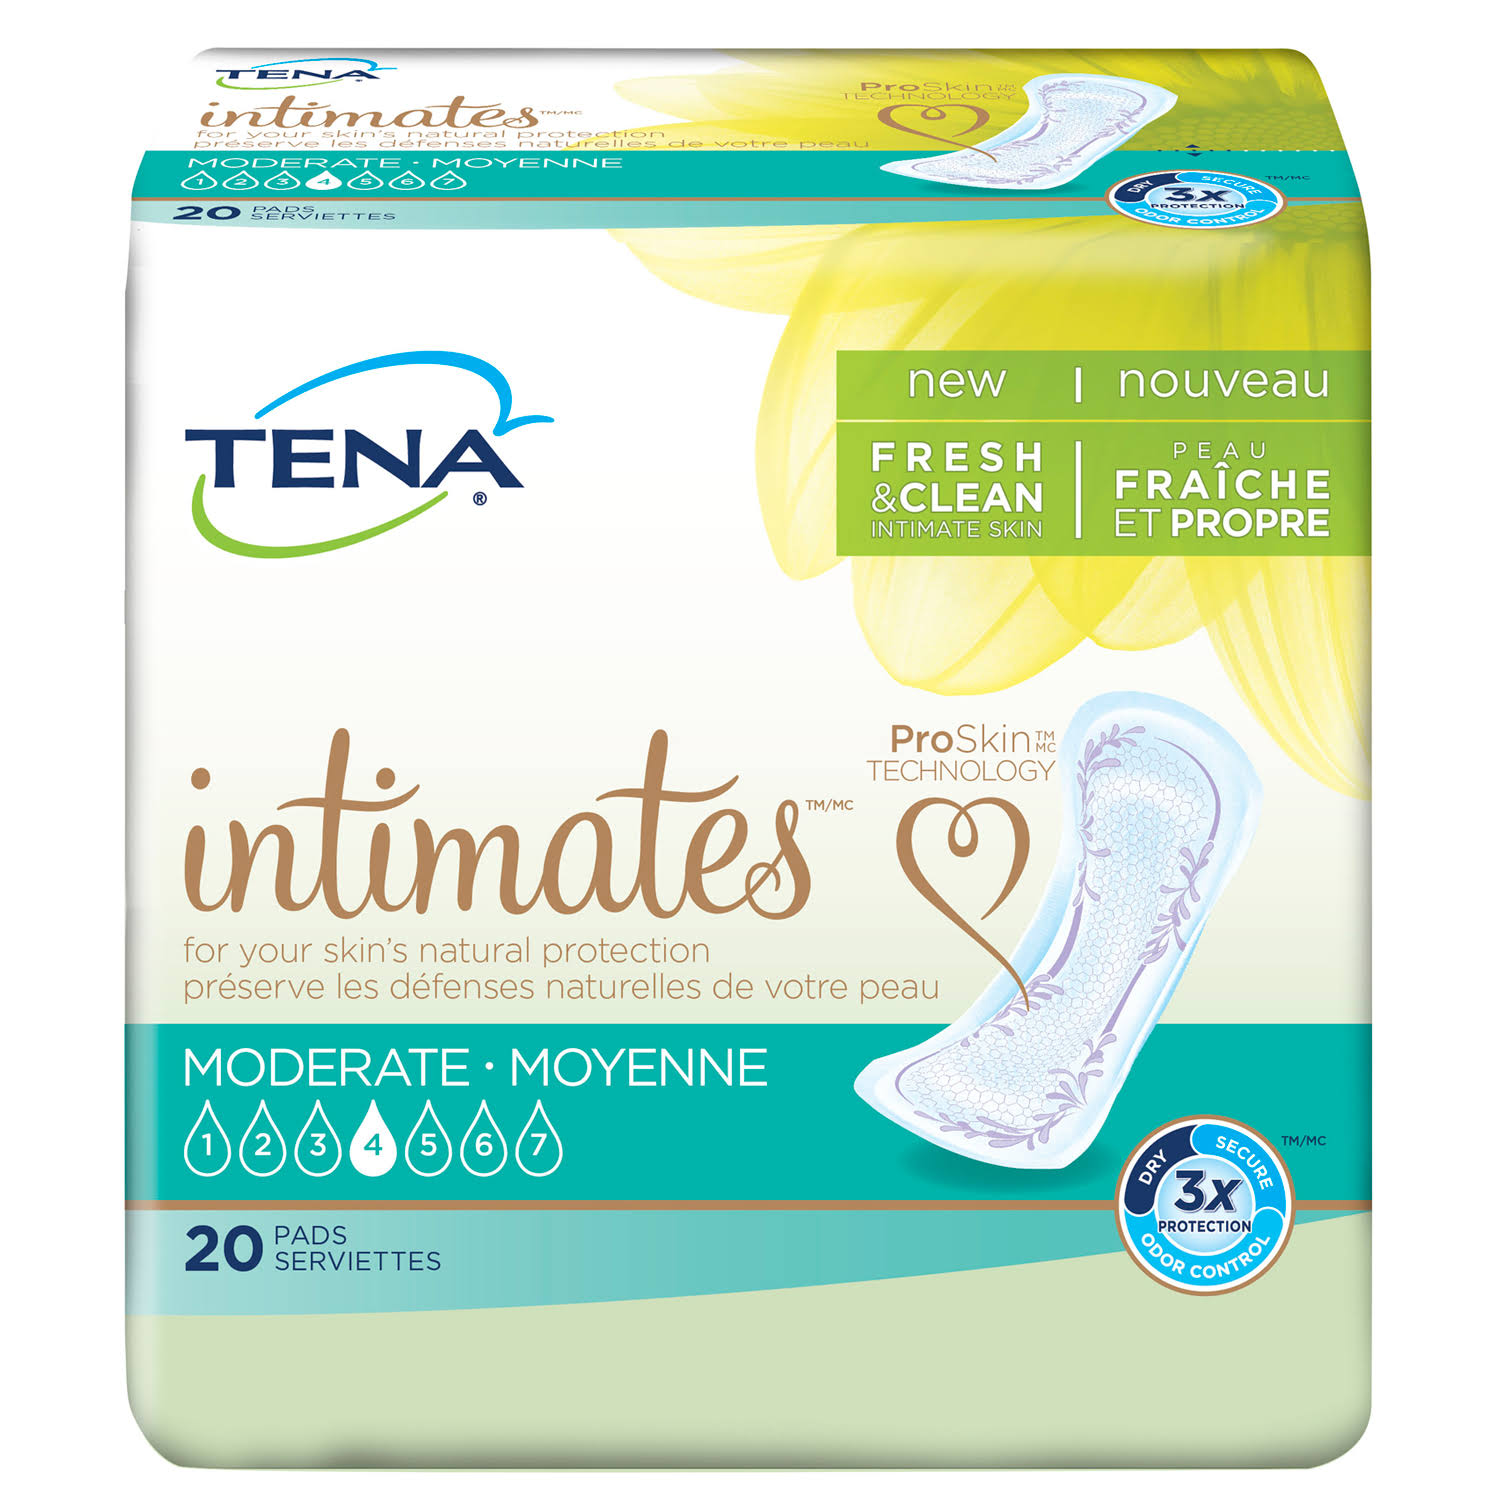 Tena Intimates Moderate Bladder Protection Pads Pack - 20pk